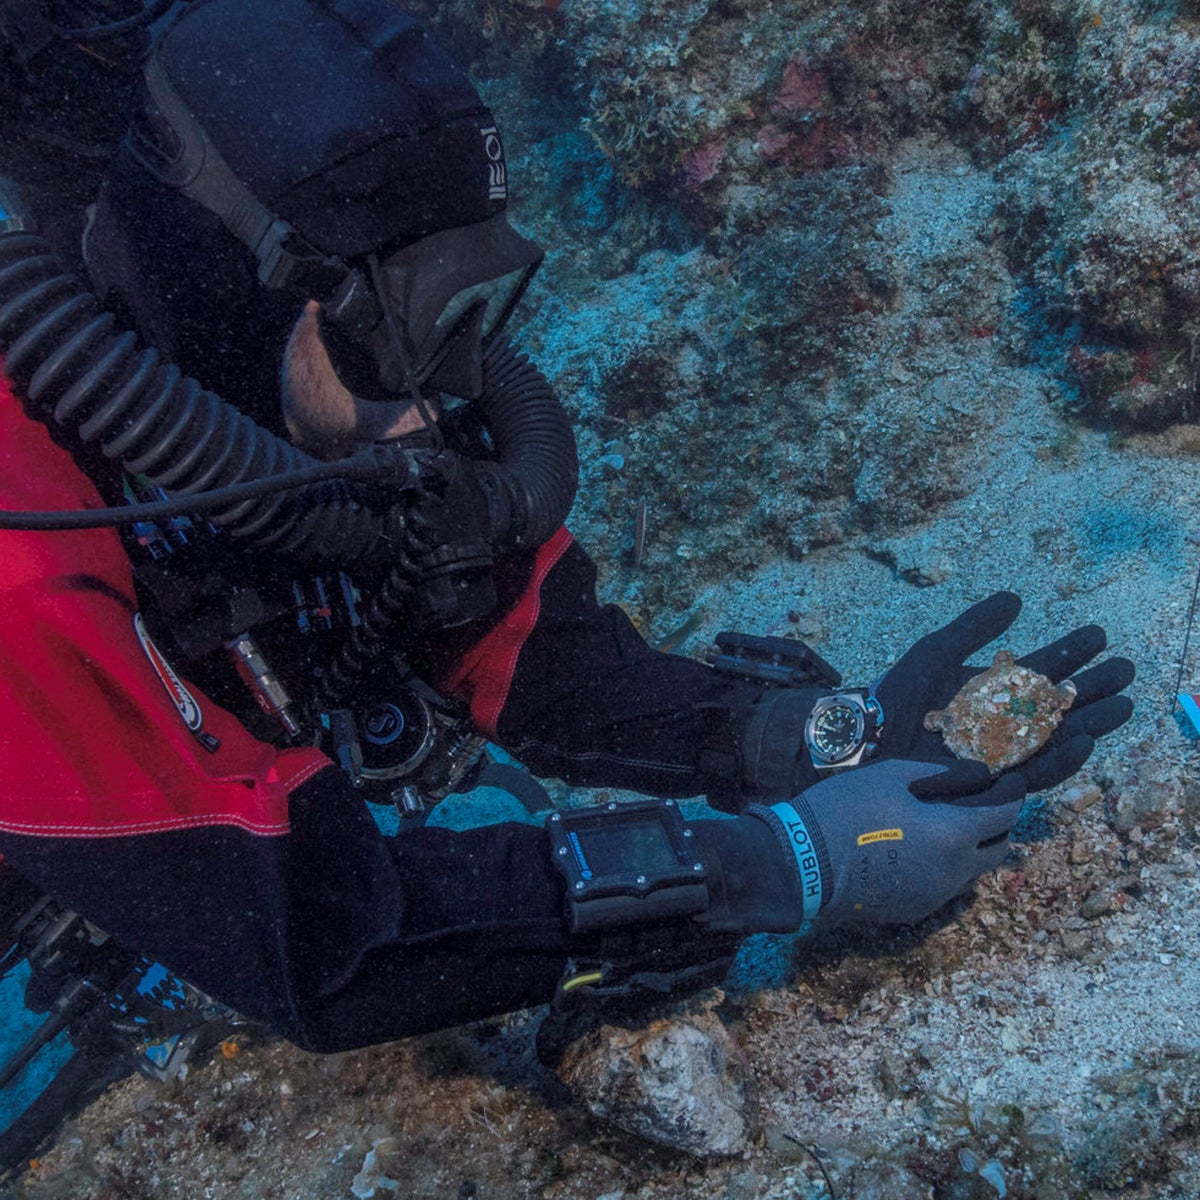 Discovery of a missing piece of Antikythera Mechanism on the Aegean sea floor